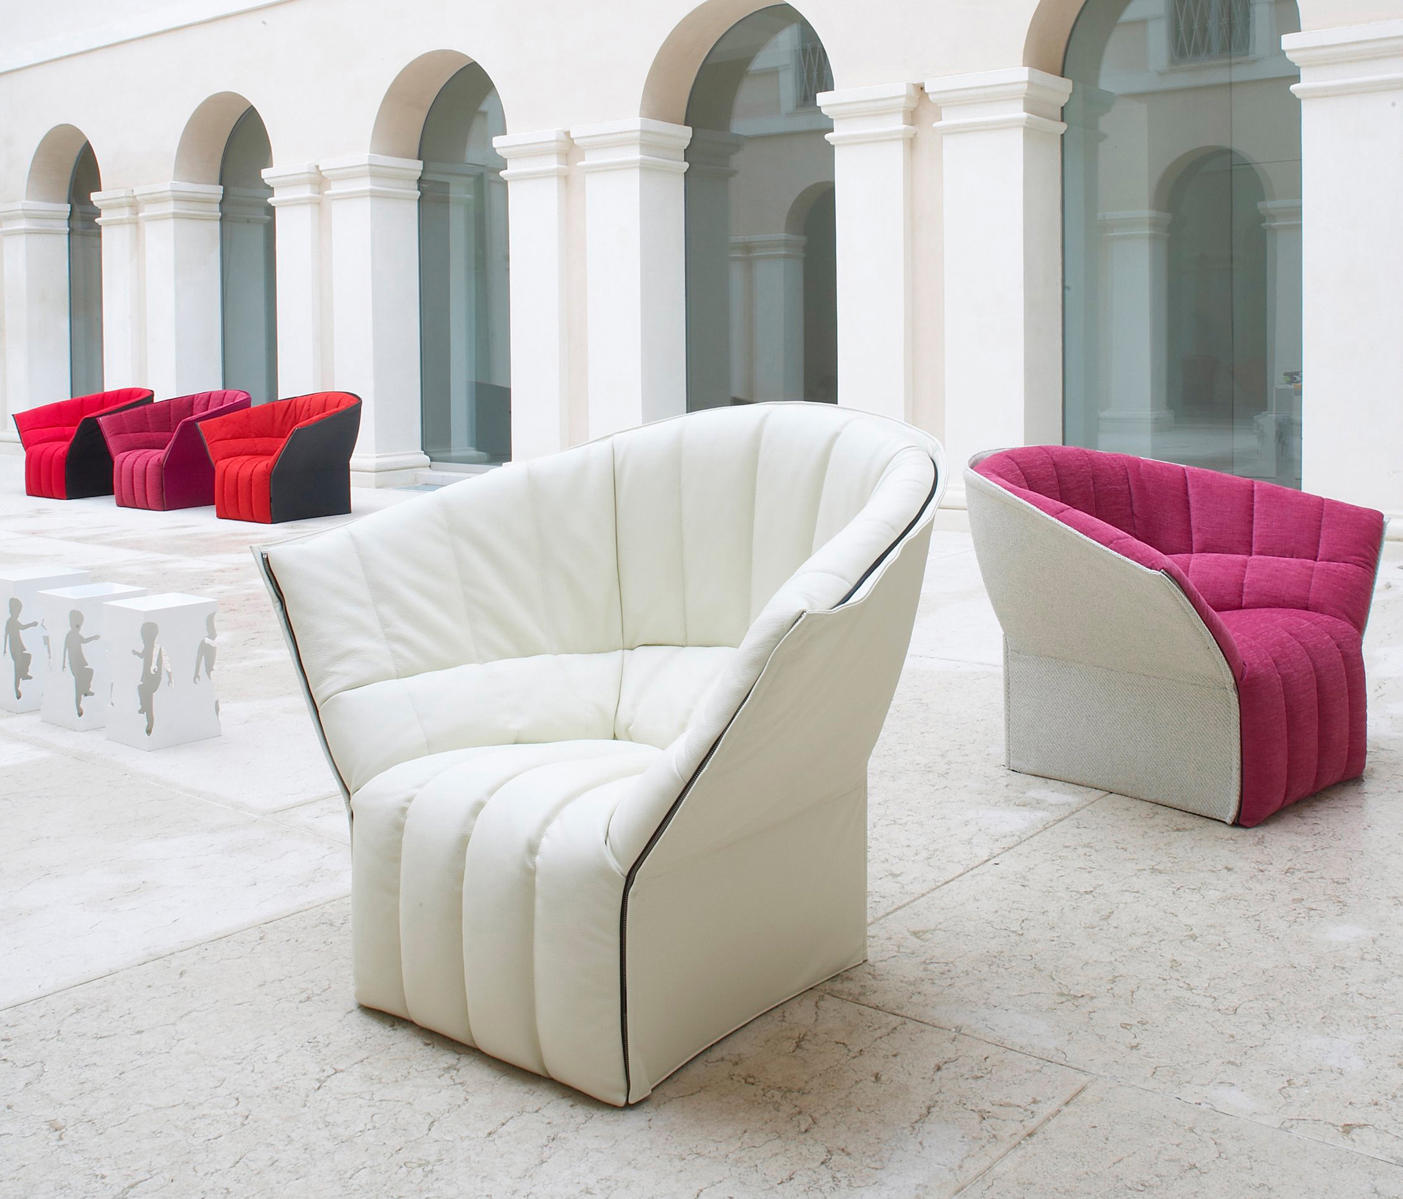 mo l armchair armchairs from ligne roset architonic. Black Bedroom Furniture Sets. Home Design Ideas